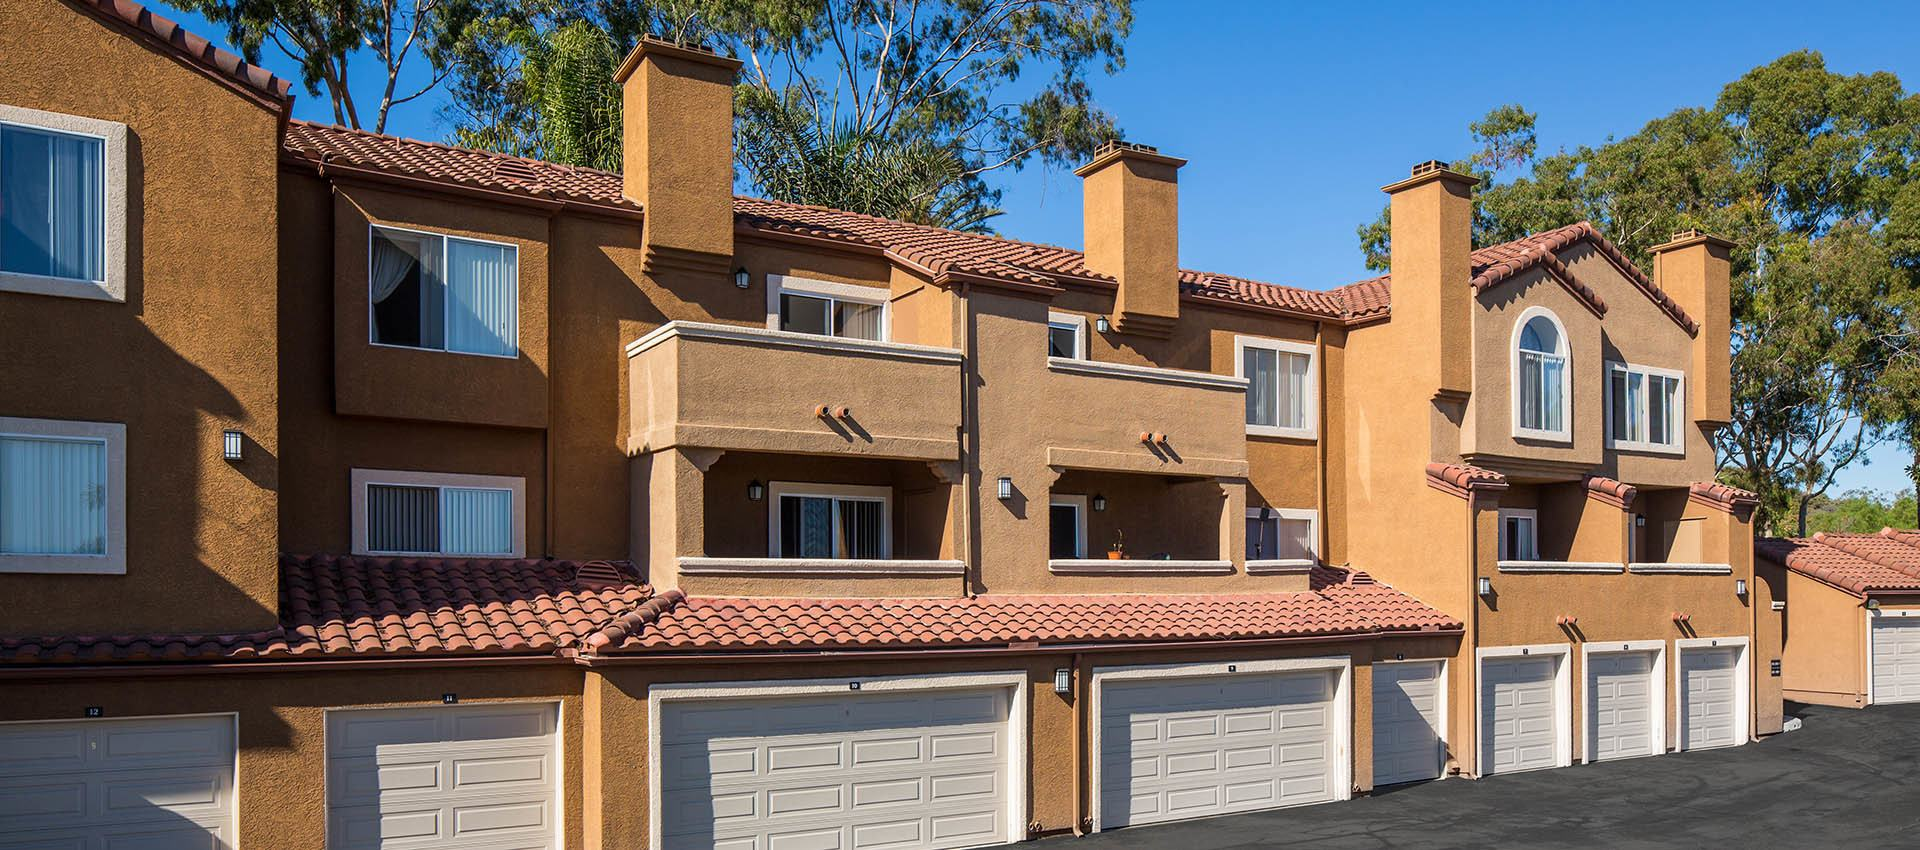 Condos With Garages at Niguel Summit Condominium Rentals in Laguna Niguel, CA